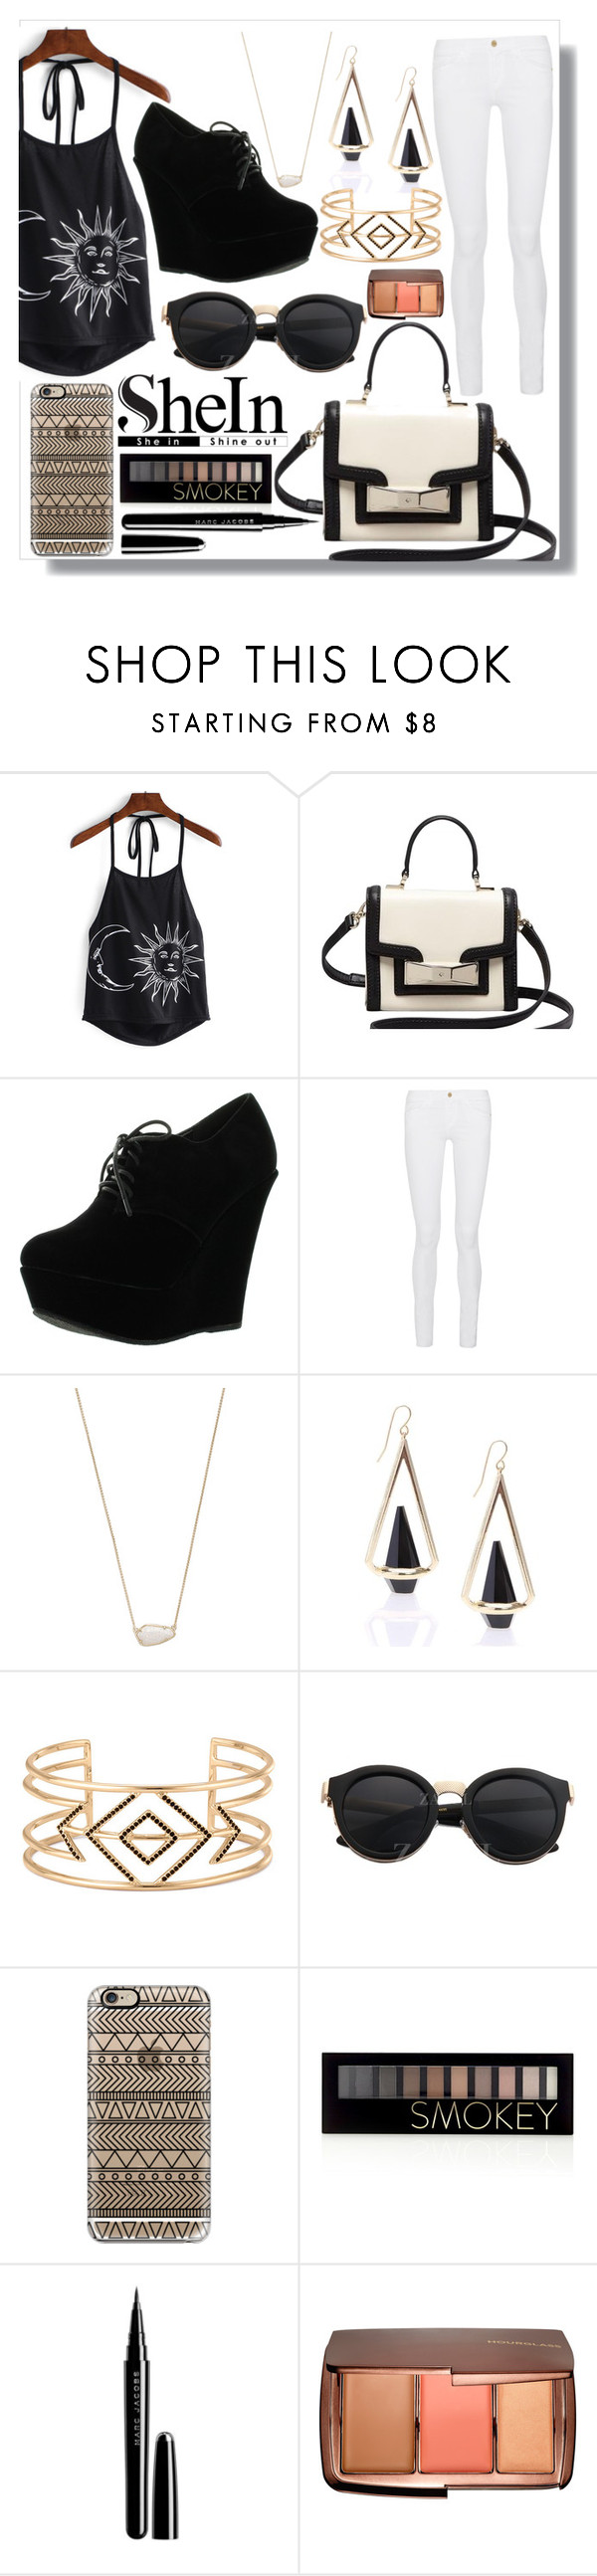 """""""She in Halter top contest"""" by glitter-n-sparkles ❤ liked on Polyvore featuring Kate Spade, Forever Link, Frame Denim, Kendra Scott, Stella & Dot, Casetify, Forever 21, Marc Jacobs and Hourglass Cosmetics"""